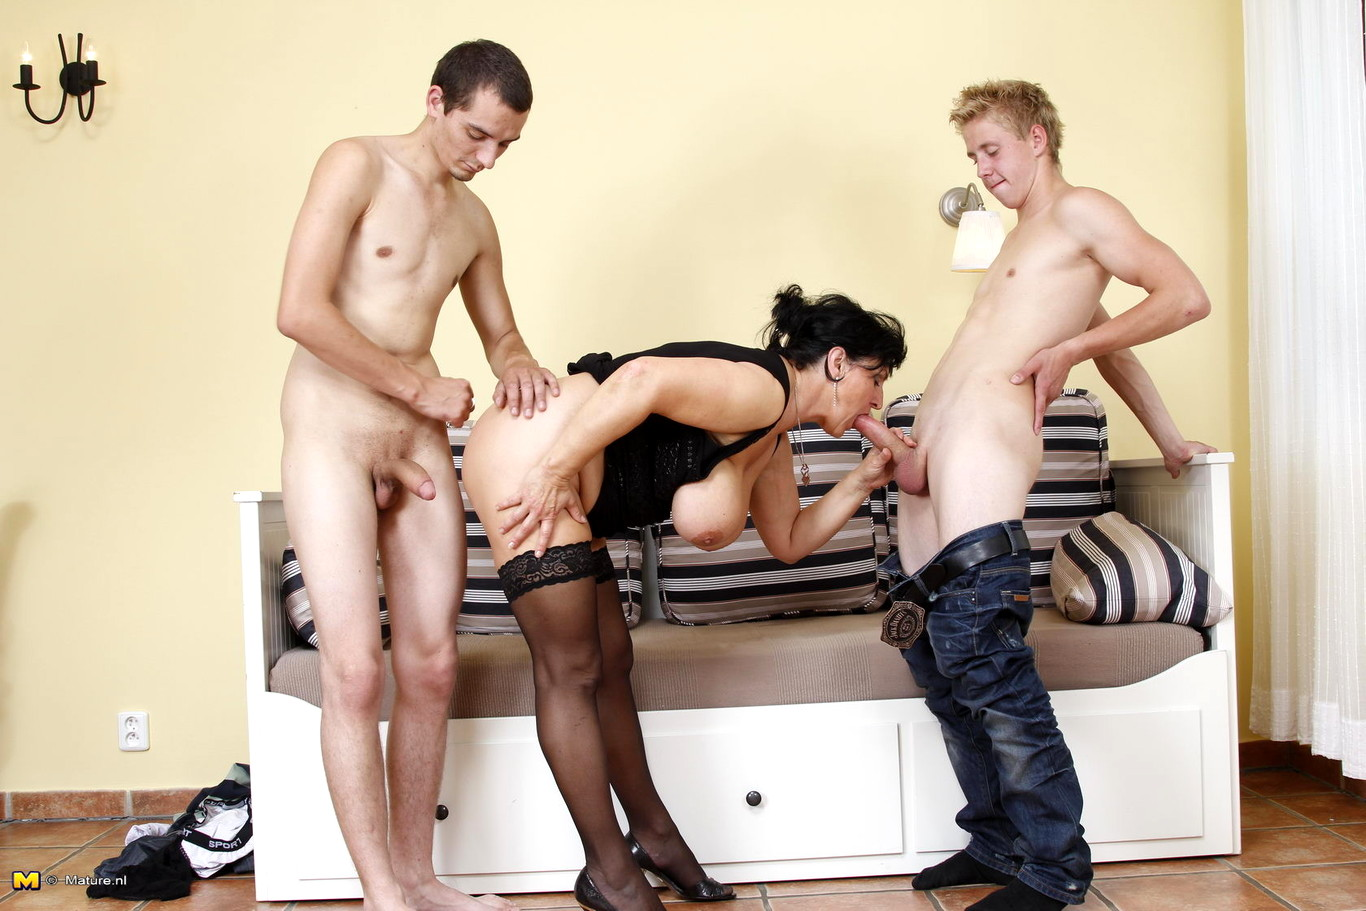 Mature with boys at party slutload